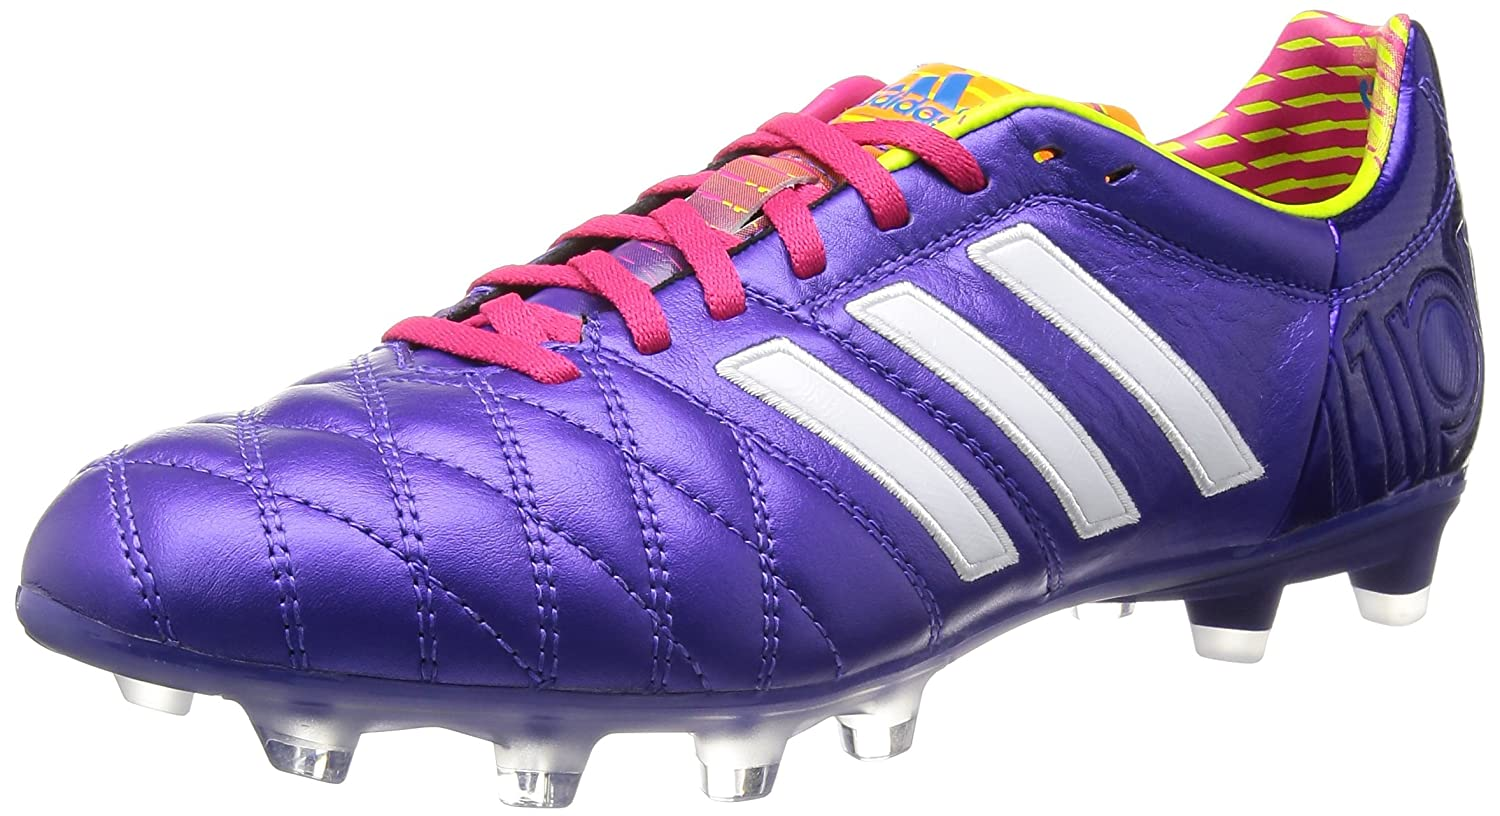 483869ecd79e Adipure 11 Pro TRX FG Football Boots Running Blast Purple Running  White Vivid Pink - size 11  Amazon.co.uk  Shoes   Bags